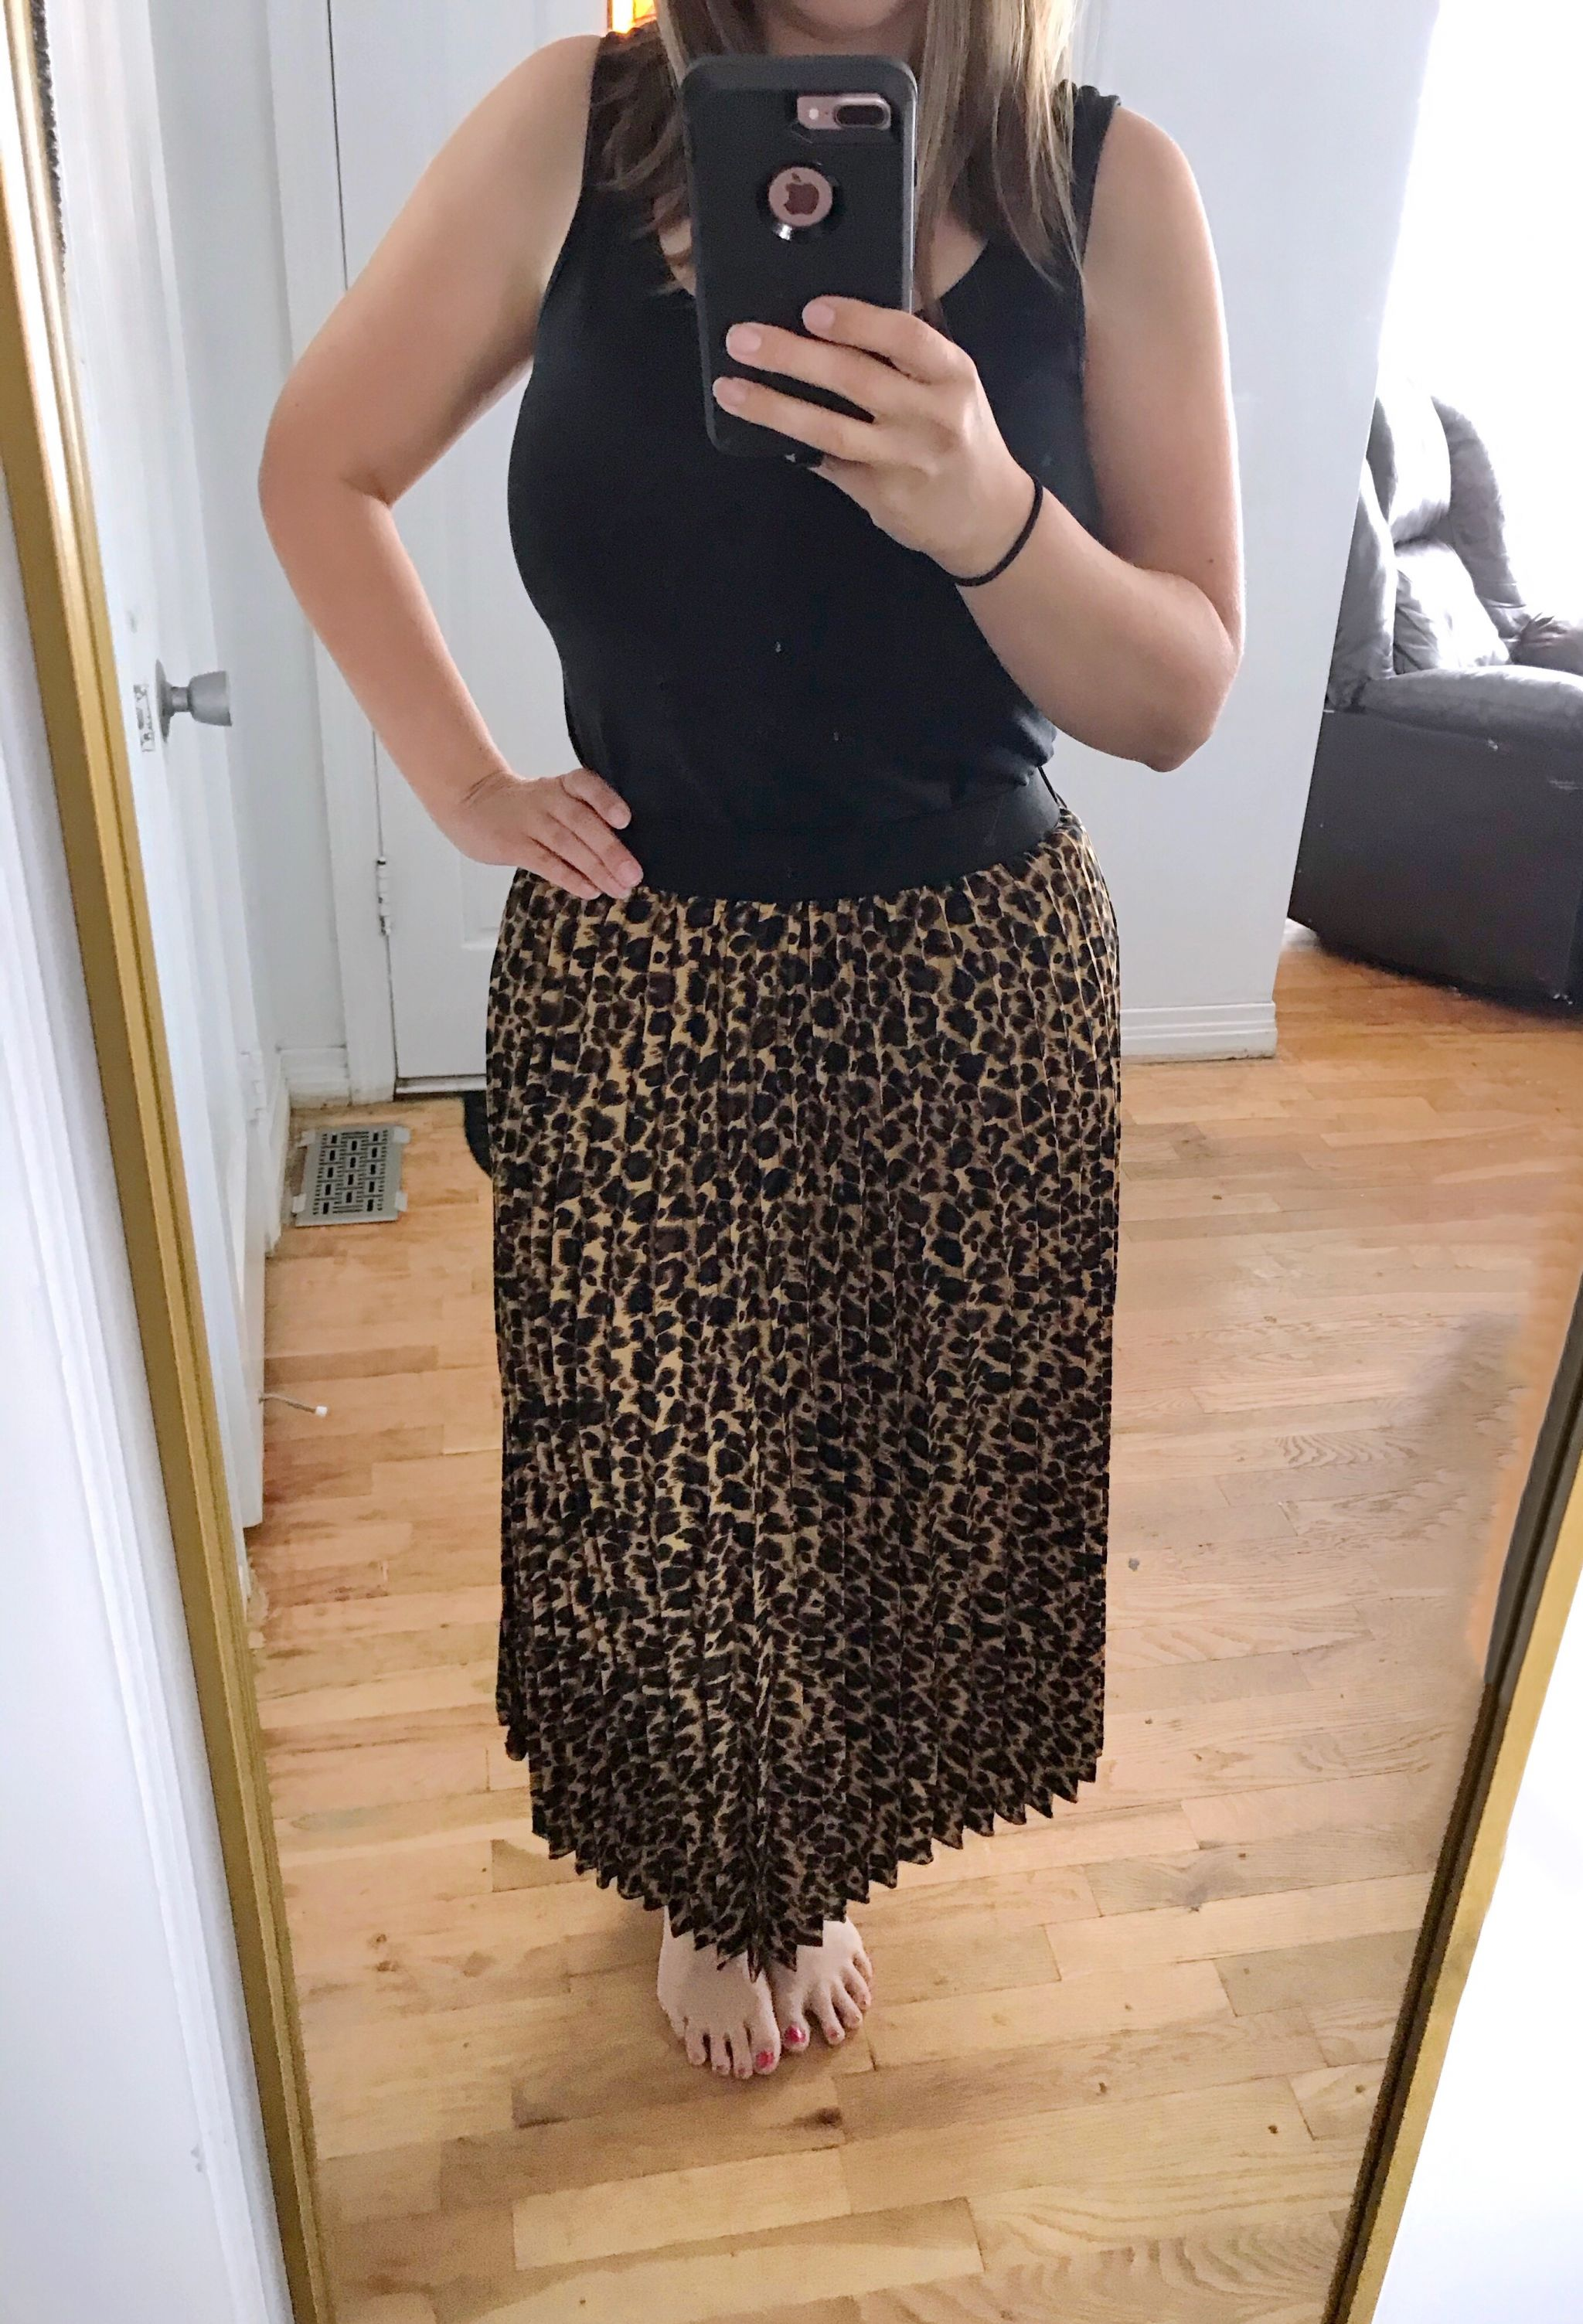 honest SheIn review - JK Style